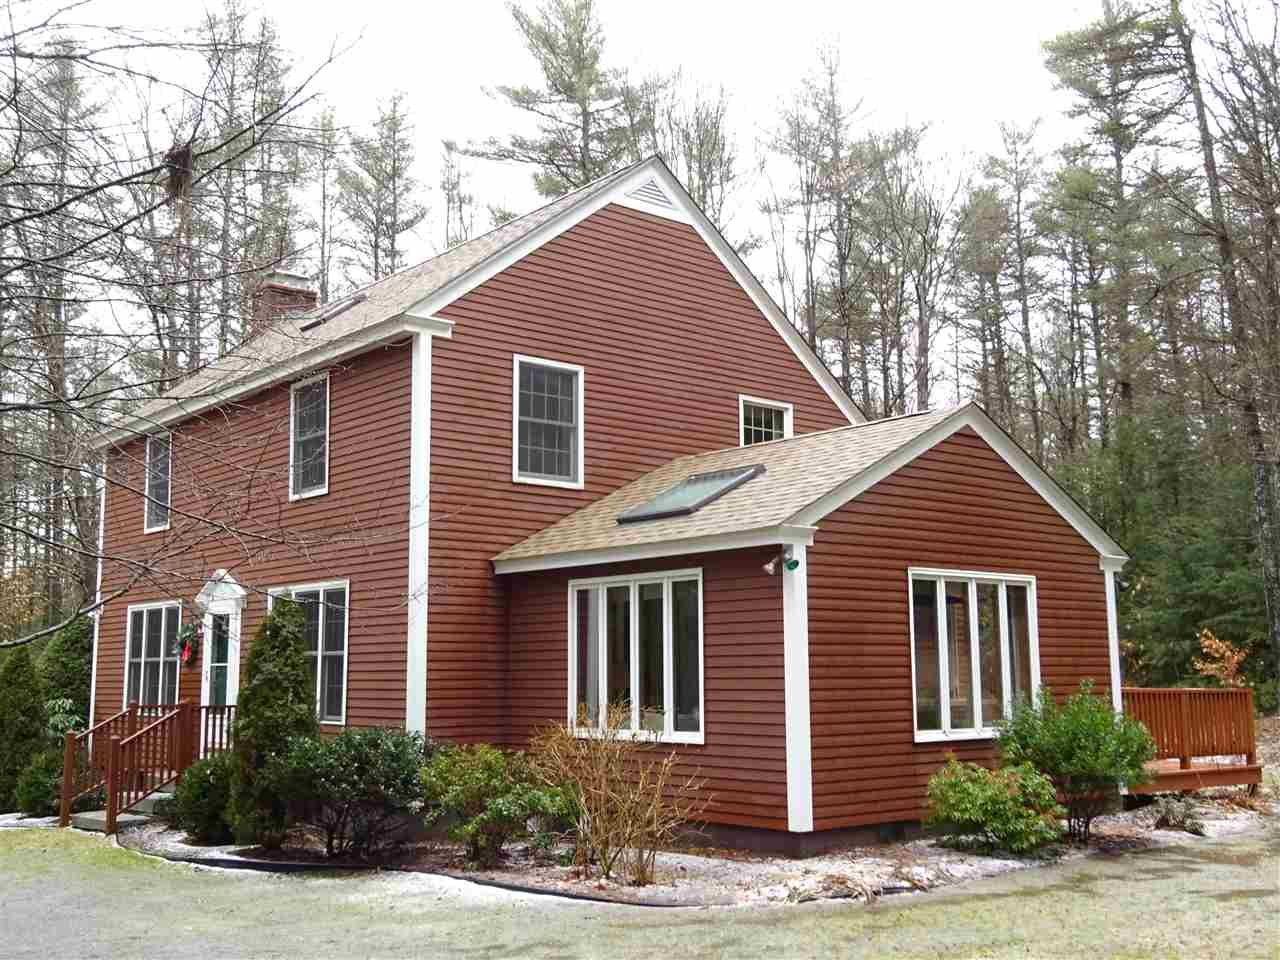 MLS 4732445: 170 Fish Hatchery Road, Richmond NH